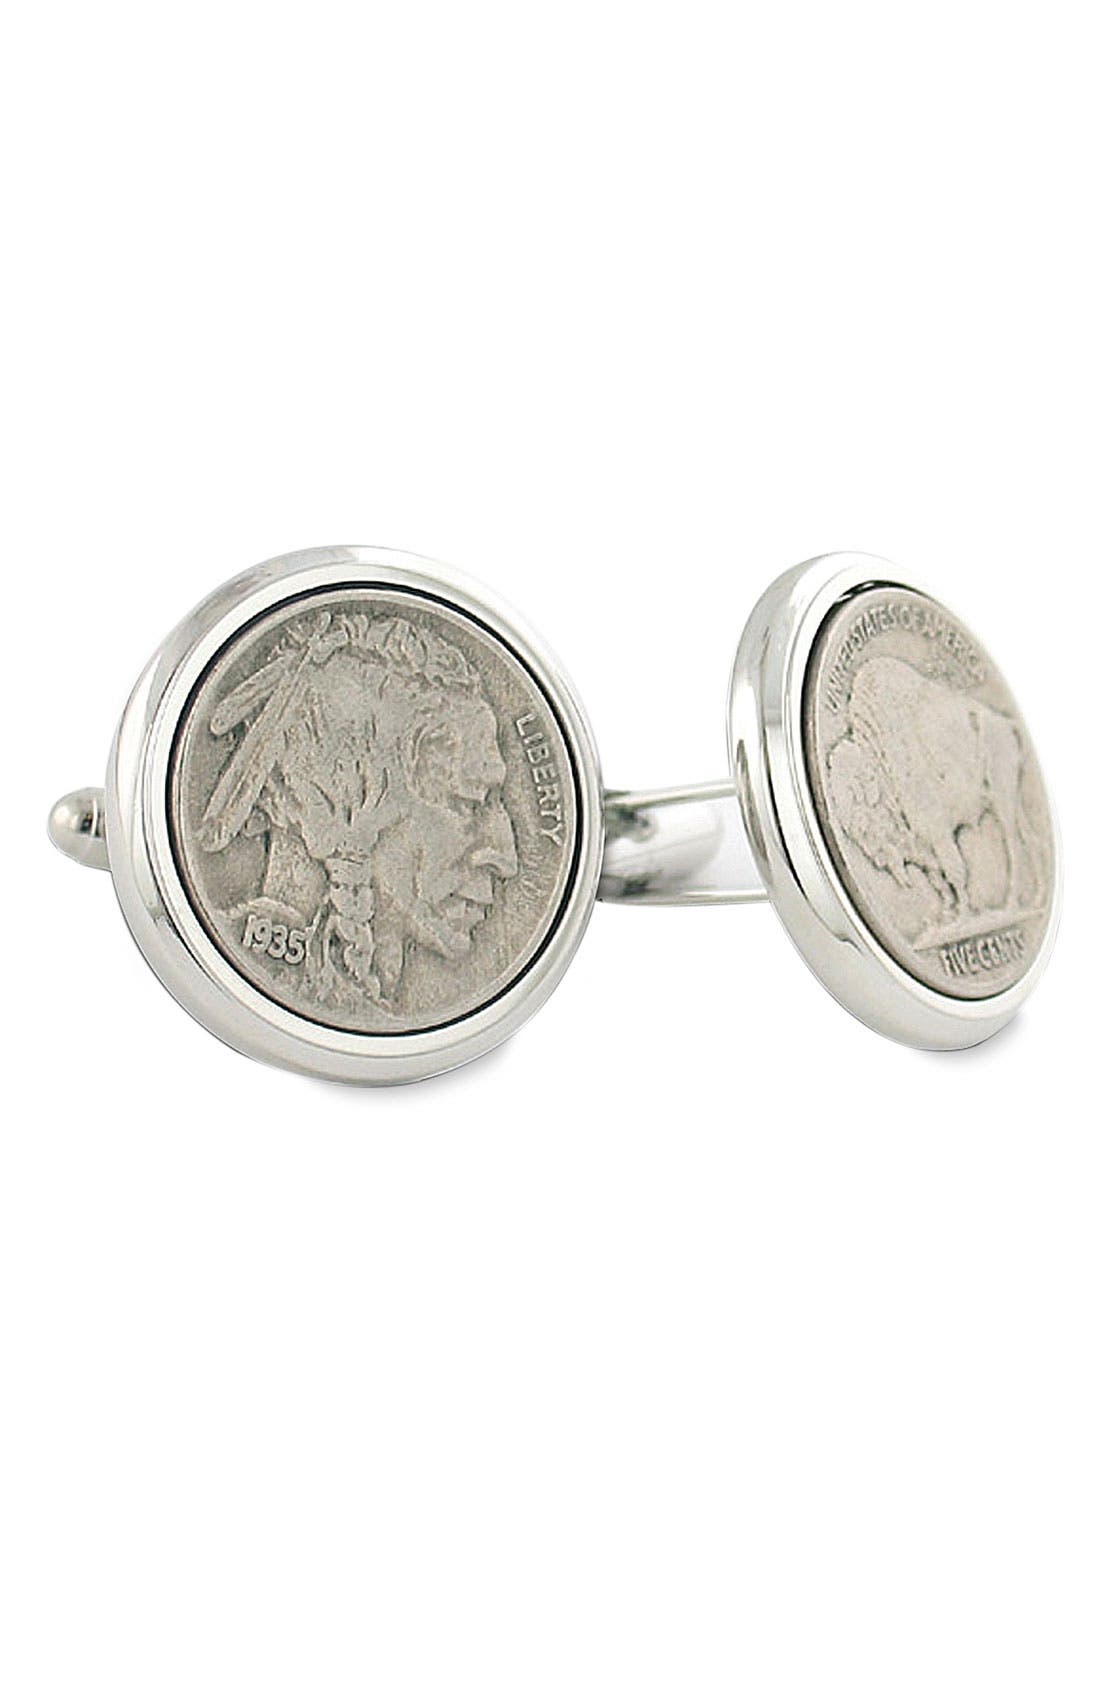 Main Image - David Donahue Buffalo Nickel Cuff Links